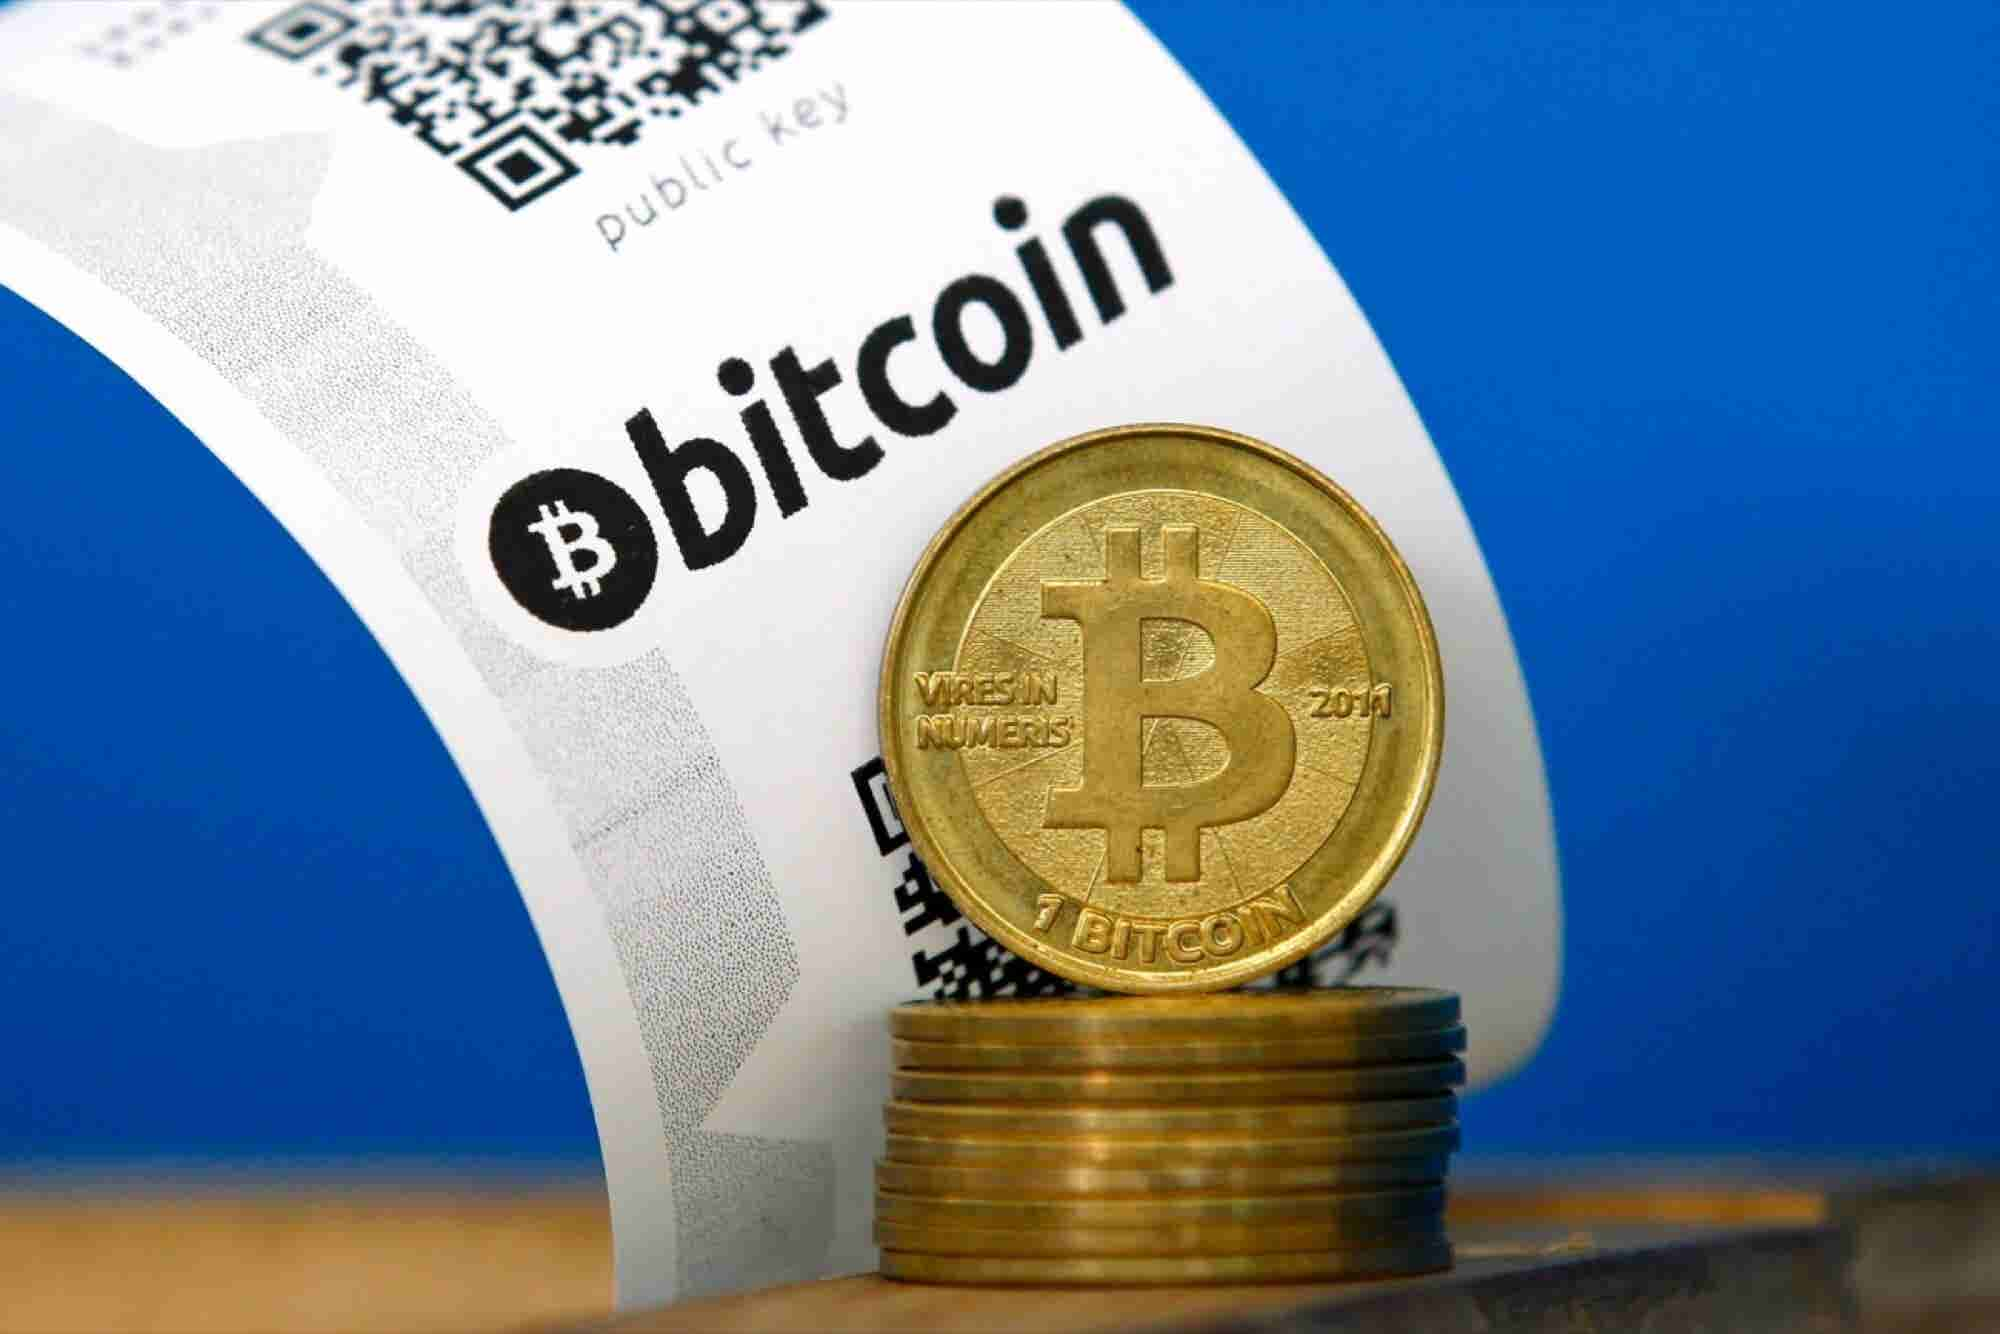 EU Cracks Down On Bitcoin, Anonymous Payments Systems to Curb Terrorism Funding